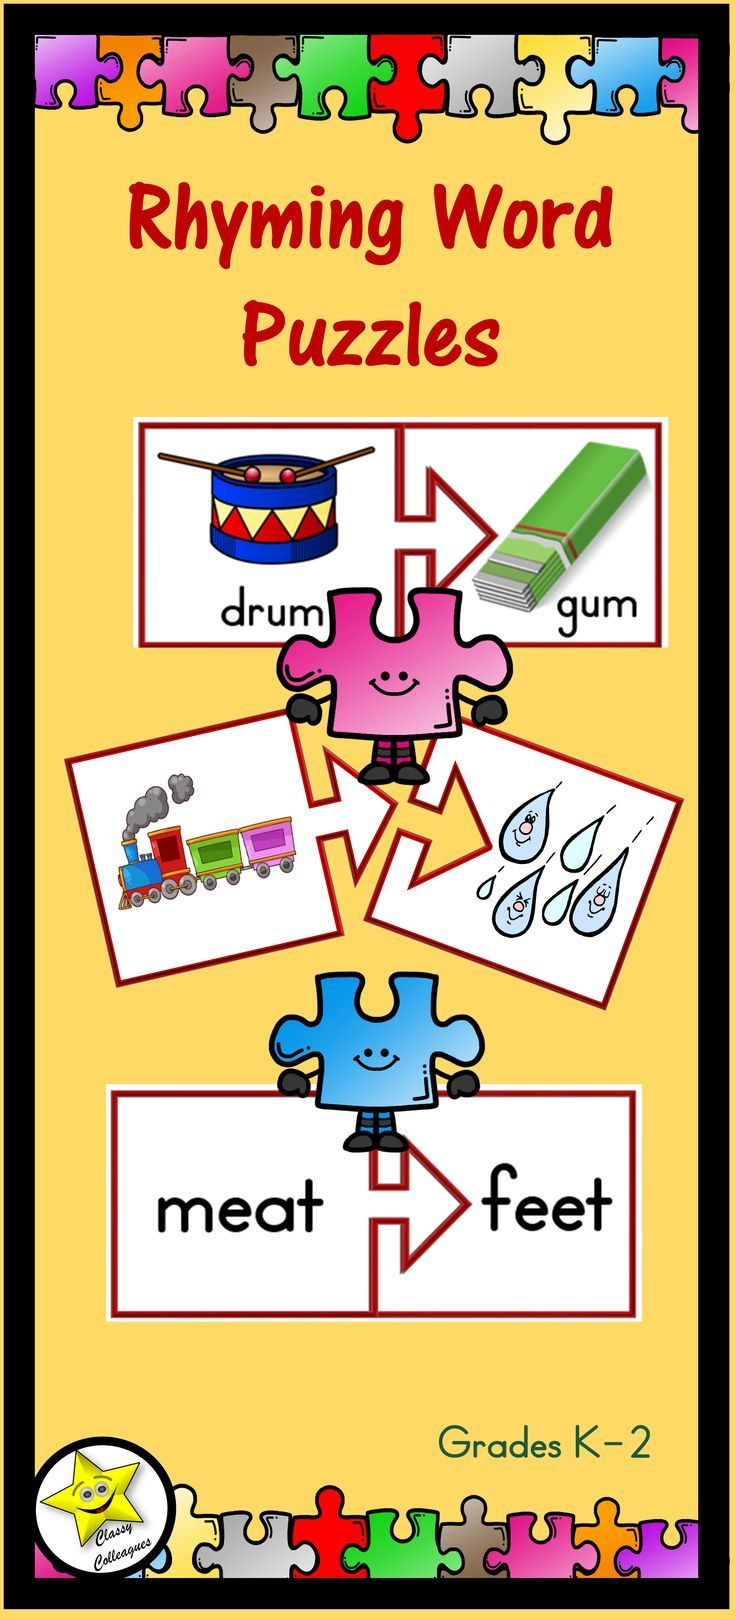 Worksheets 5 Rhyming Words rhyming word puzzles words phonological awareness and there are 123 pairs of used in this product they provided